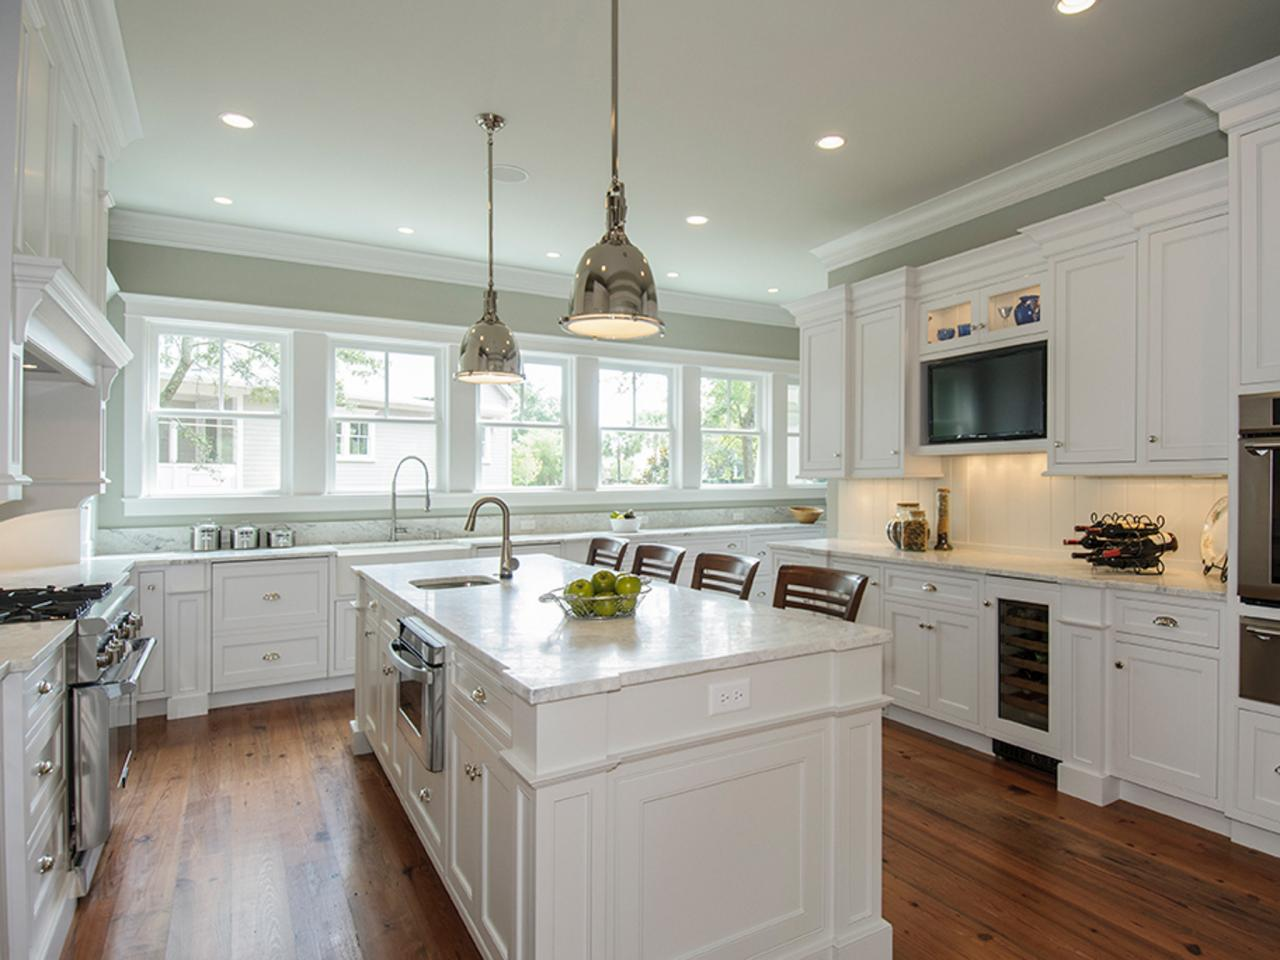 white kitchen cabinets painting kitchen cabinets antique white EVOOPBA